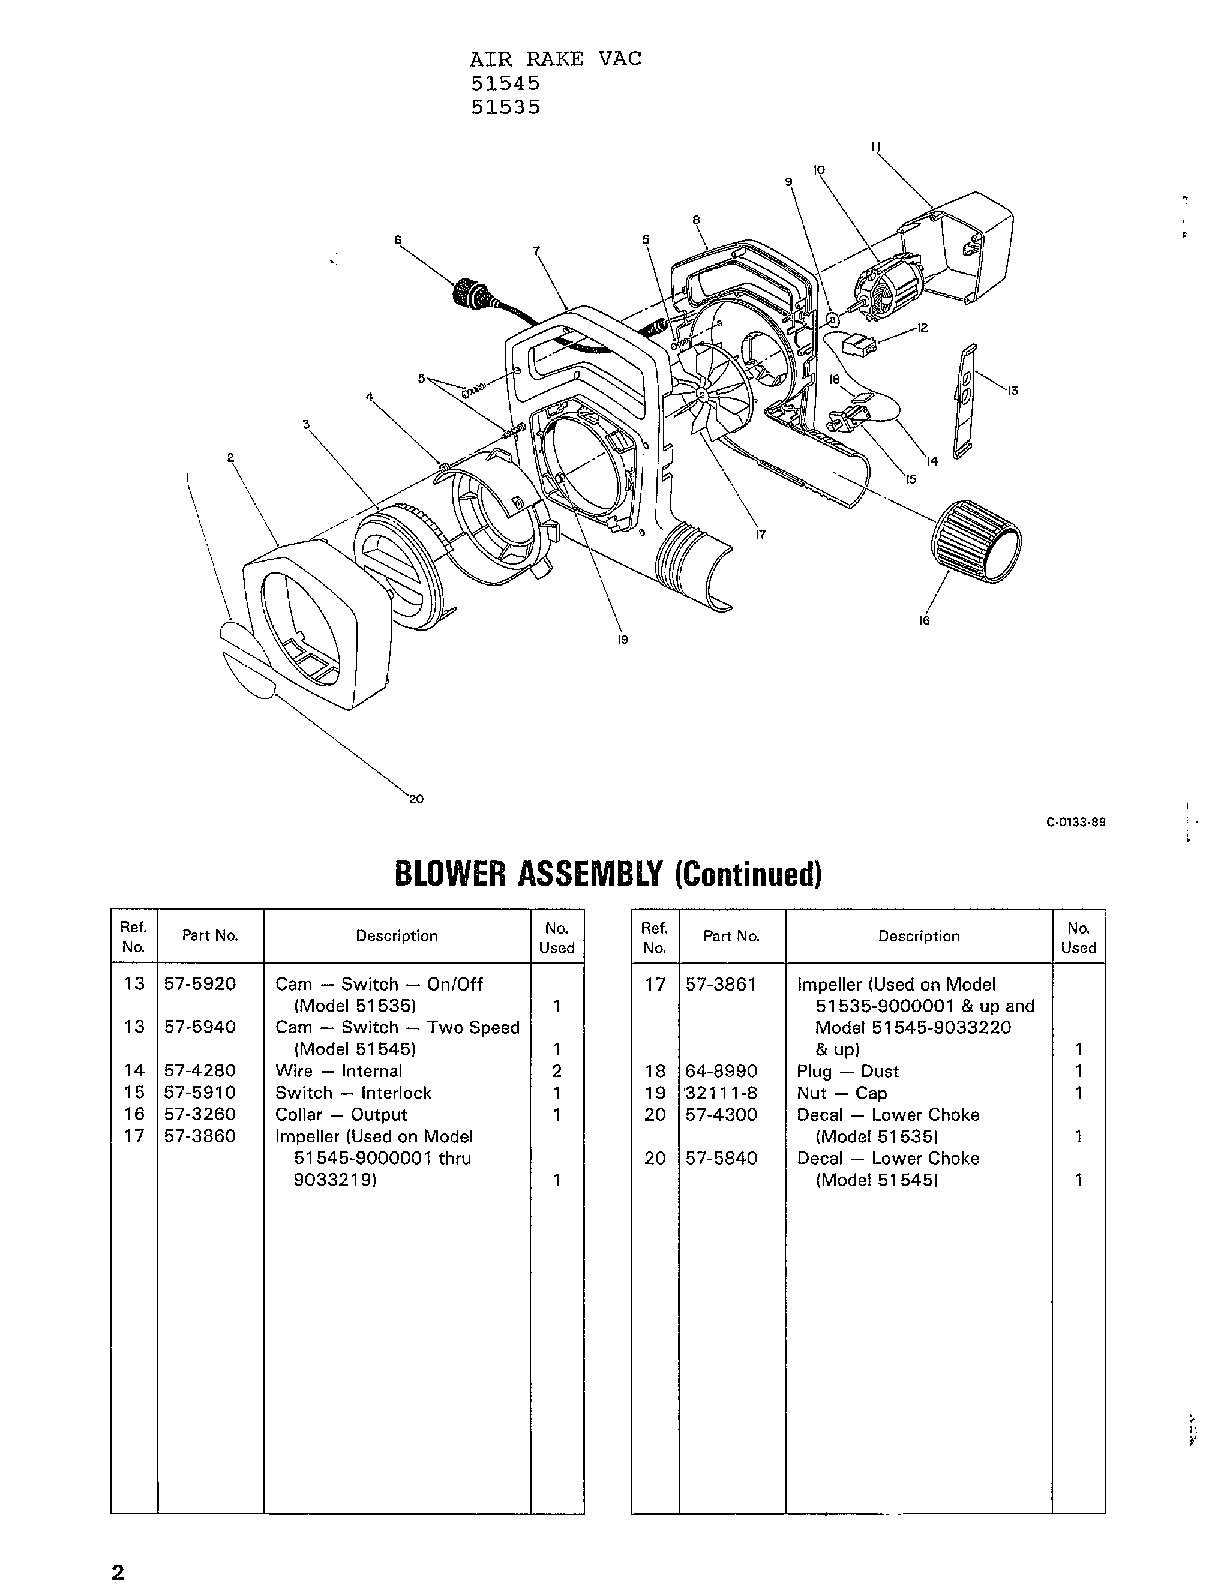 Toro 51535 blower assembly page 2 diagram